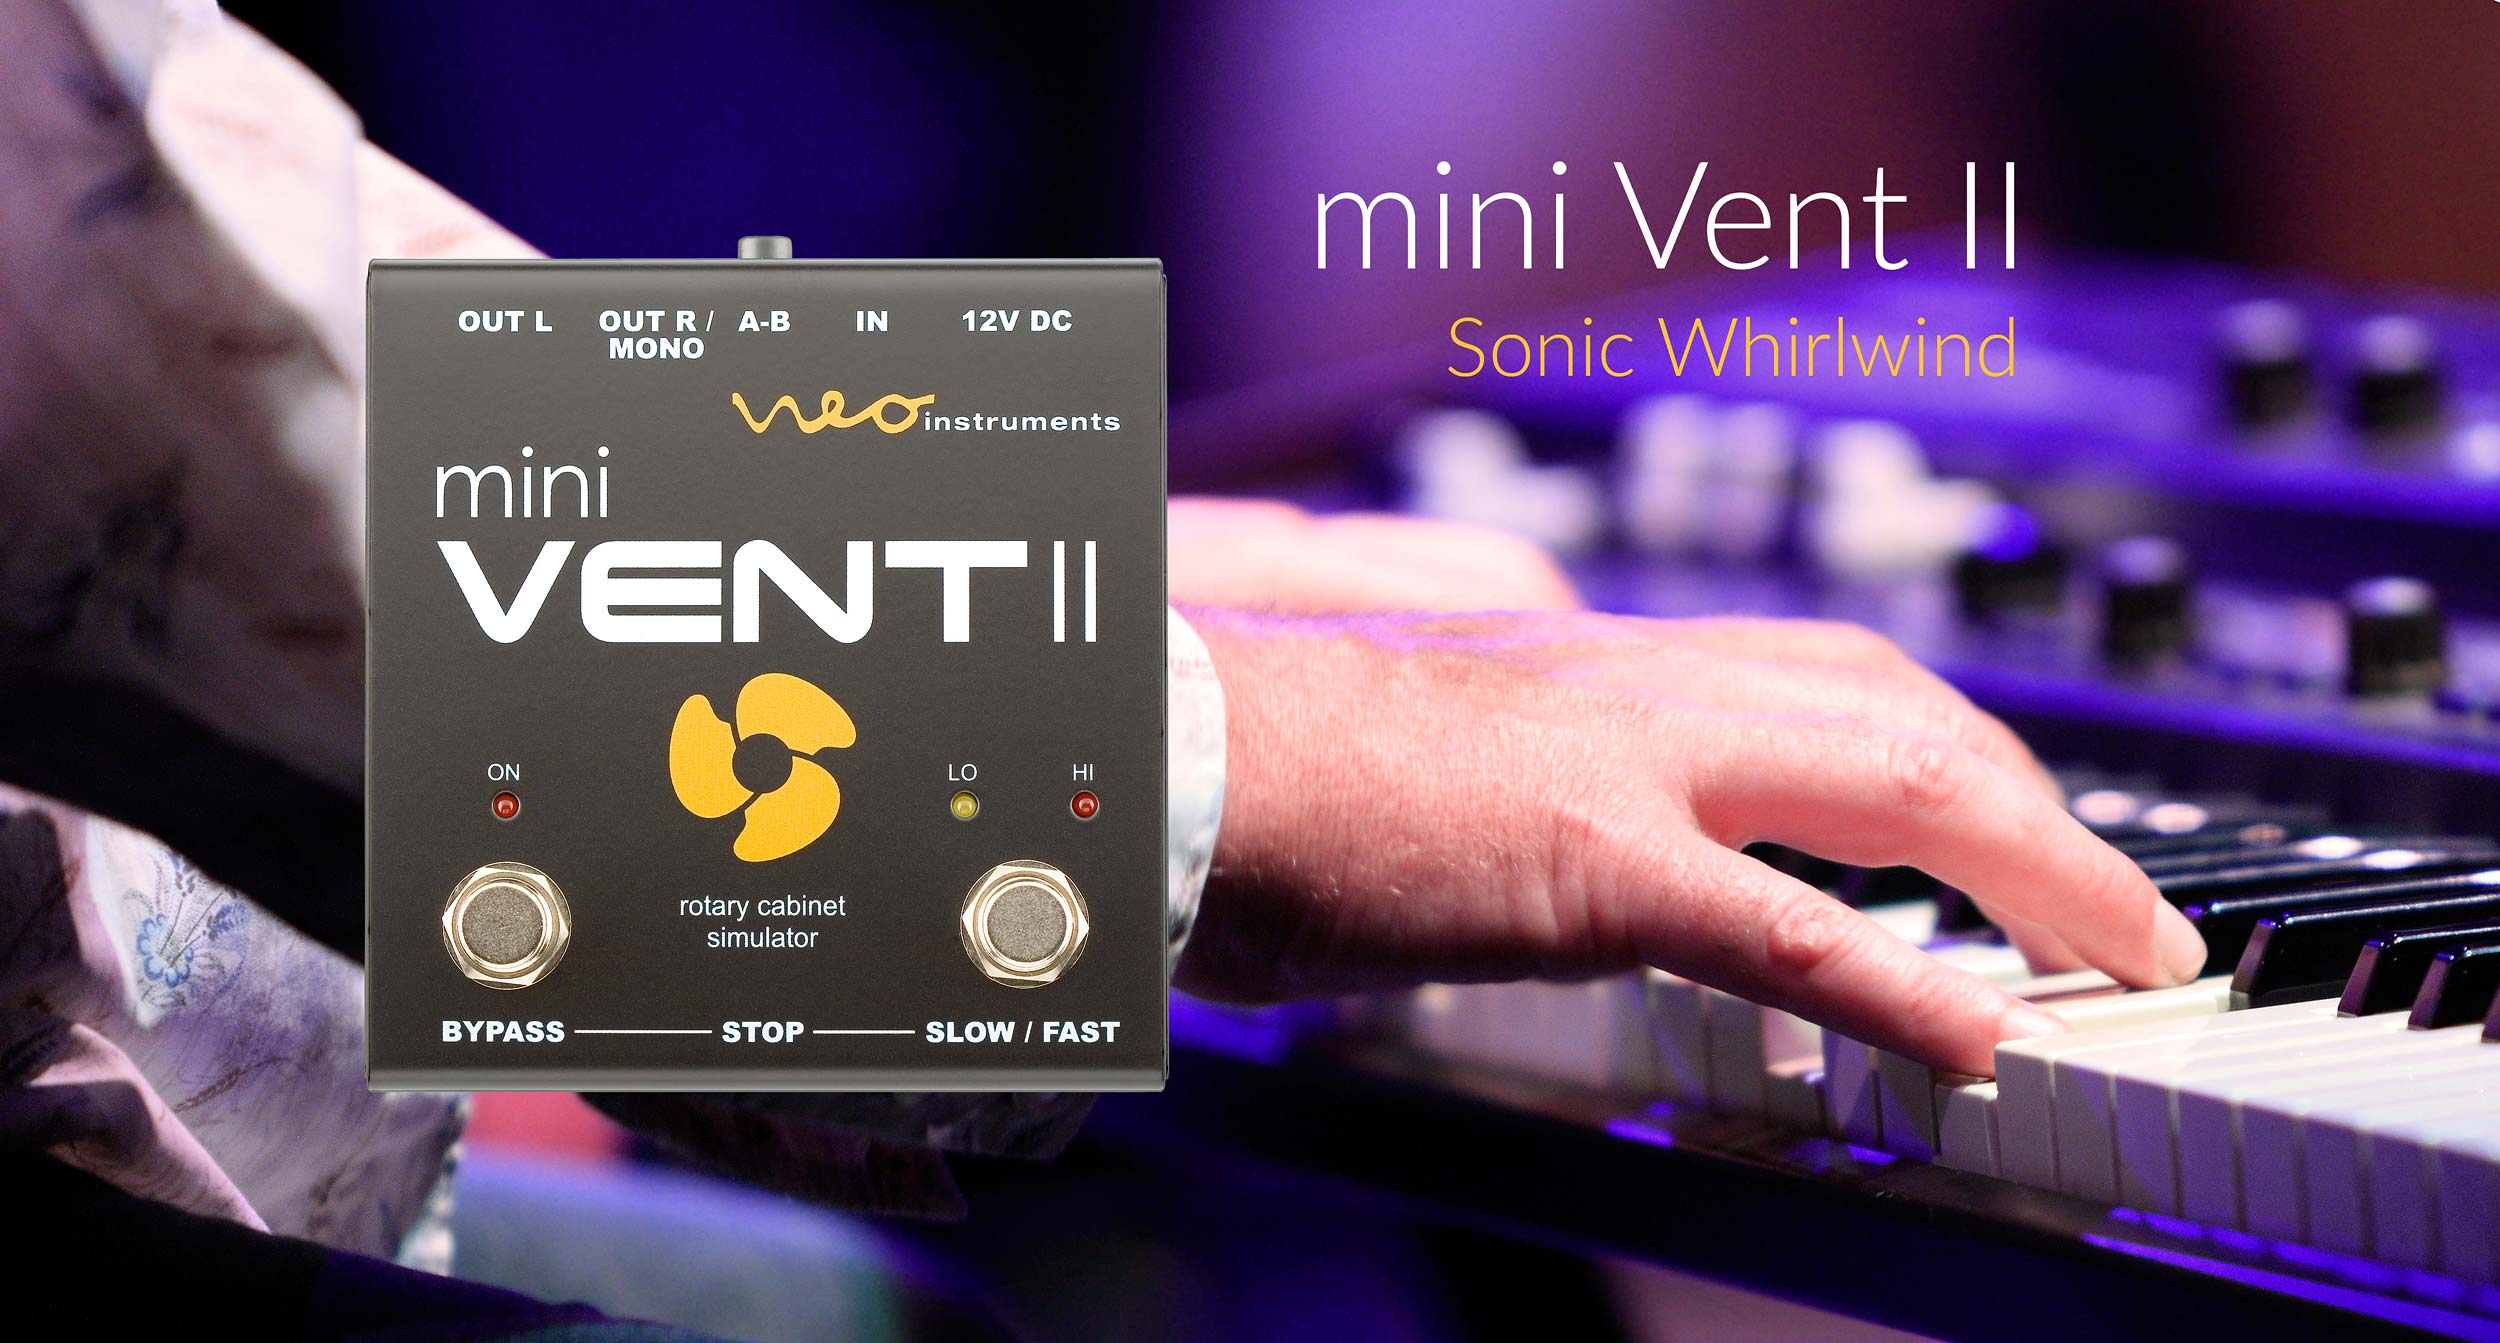 neo instruments - mini vent2